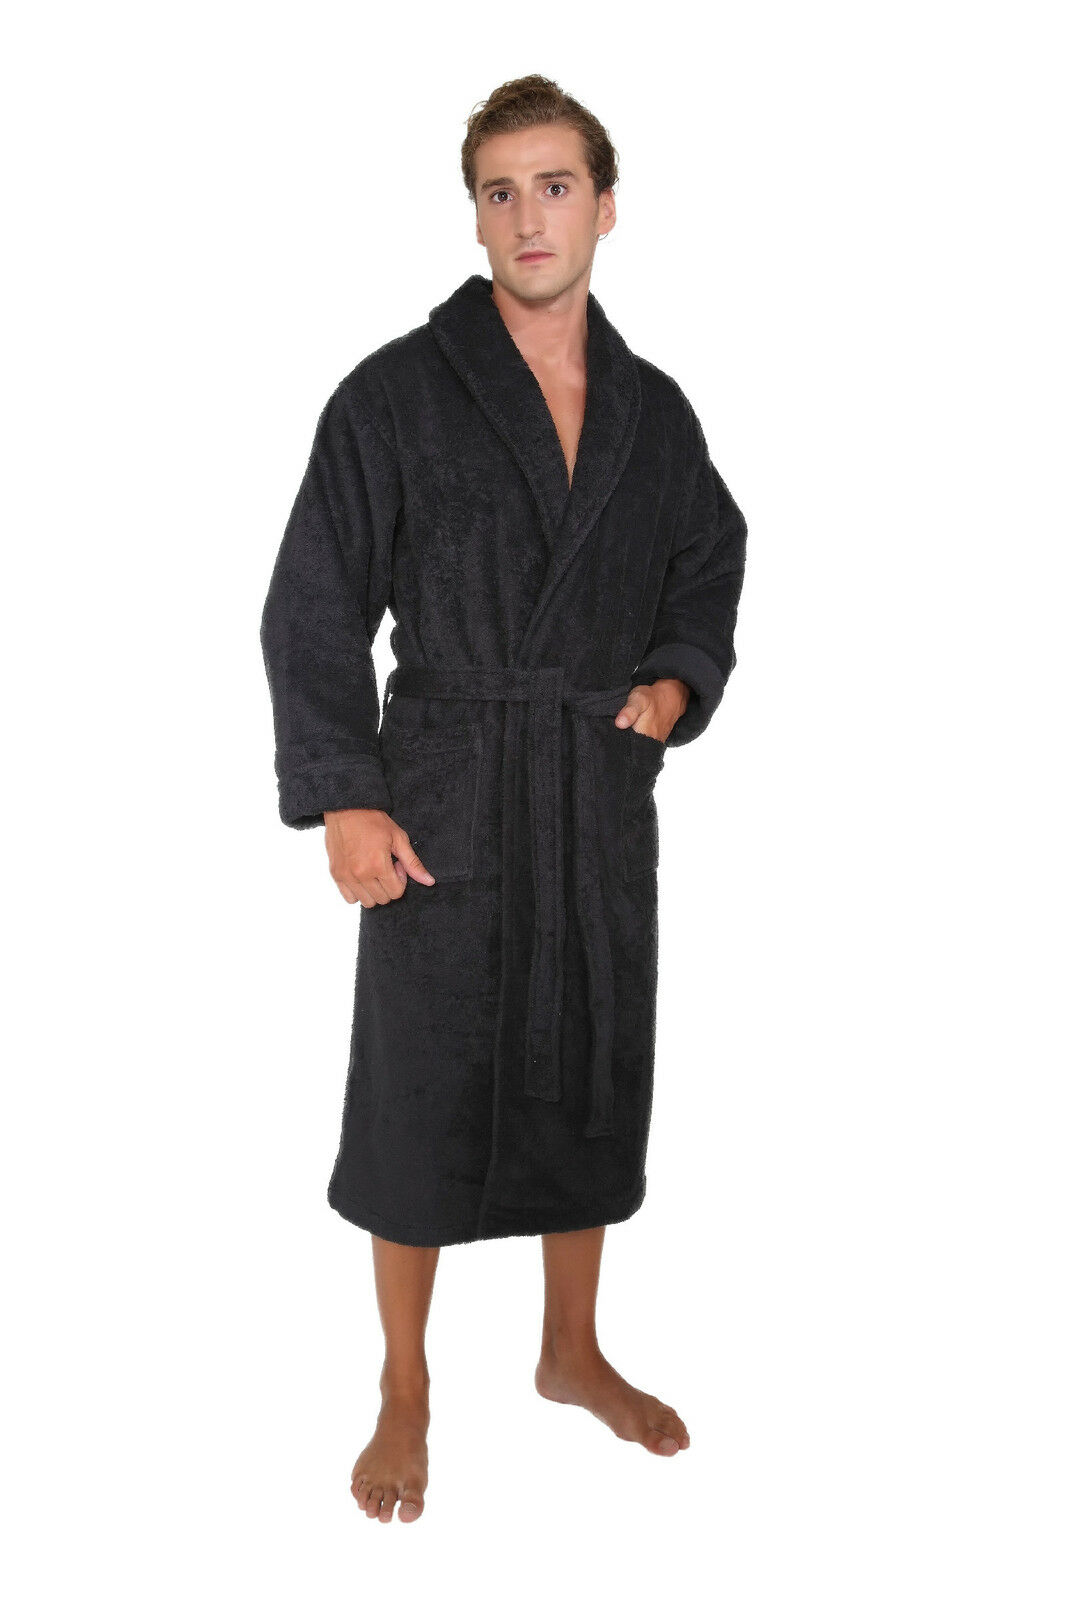 mens womens unisex luxury hotel bathrobe turkish cotton made in turkey robe. Black Bedroom Furniture Sets. Home Design Ideas